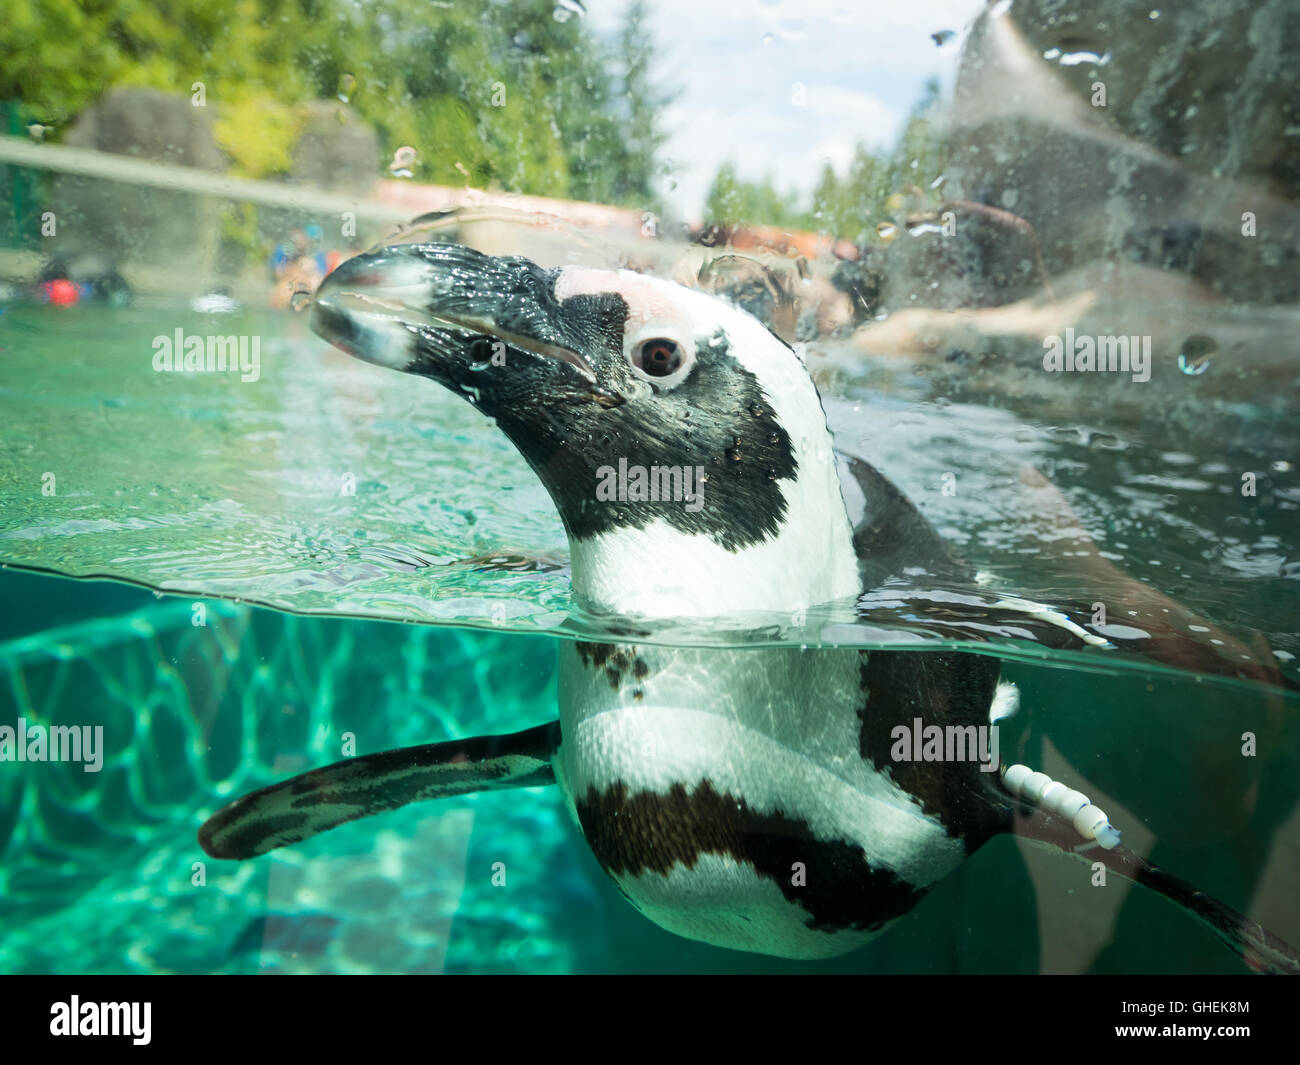 African penguin, in captivity, swimming at the Vancouver Aquarium in Vancouver, British Columbia, Canada. - Stock Image